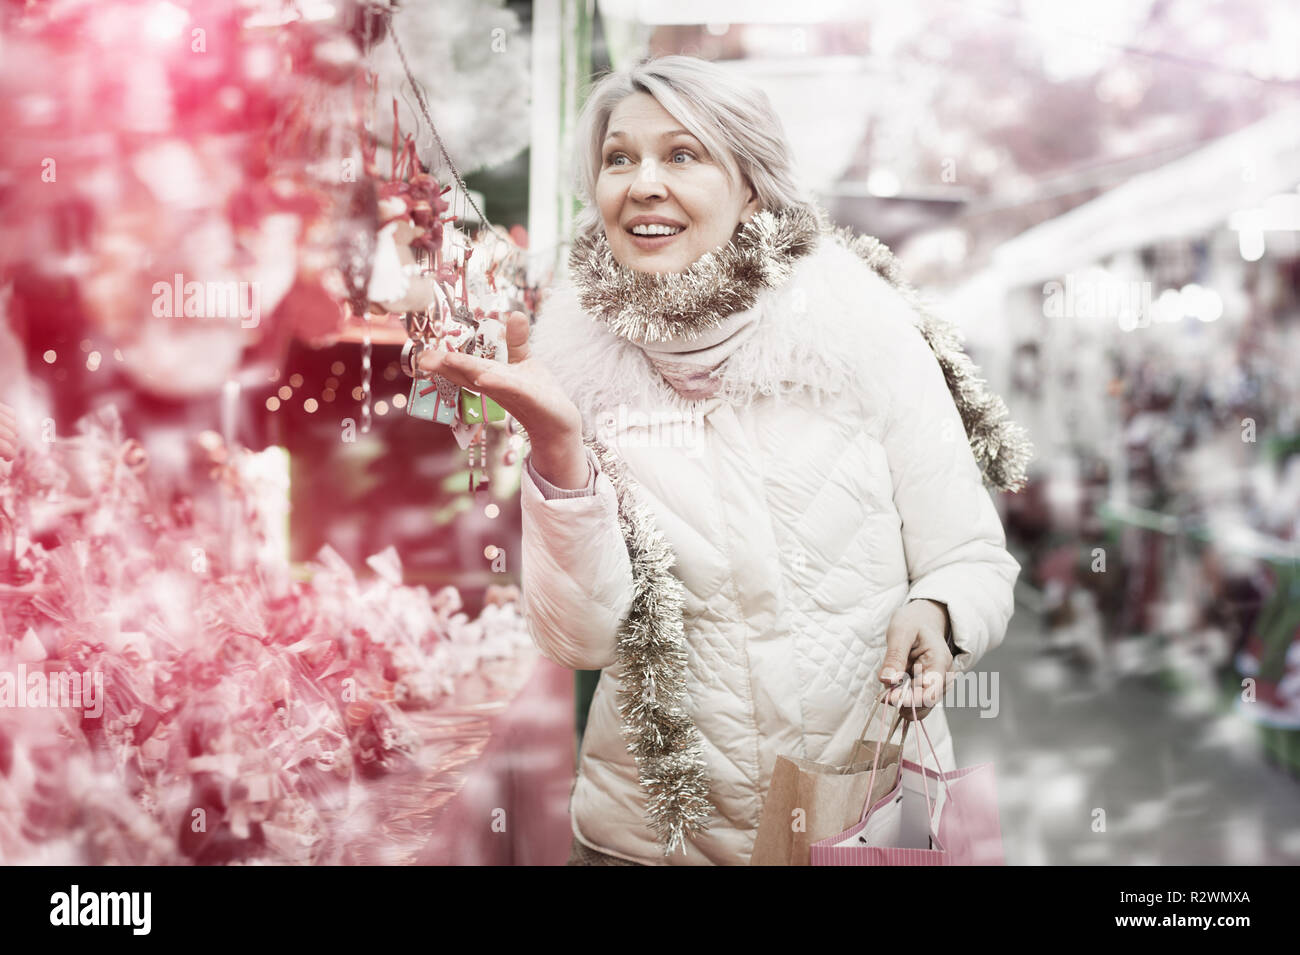 Smiling woman is buying Christmas ornamentals in the market outdoor. - Stock Image